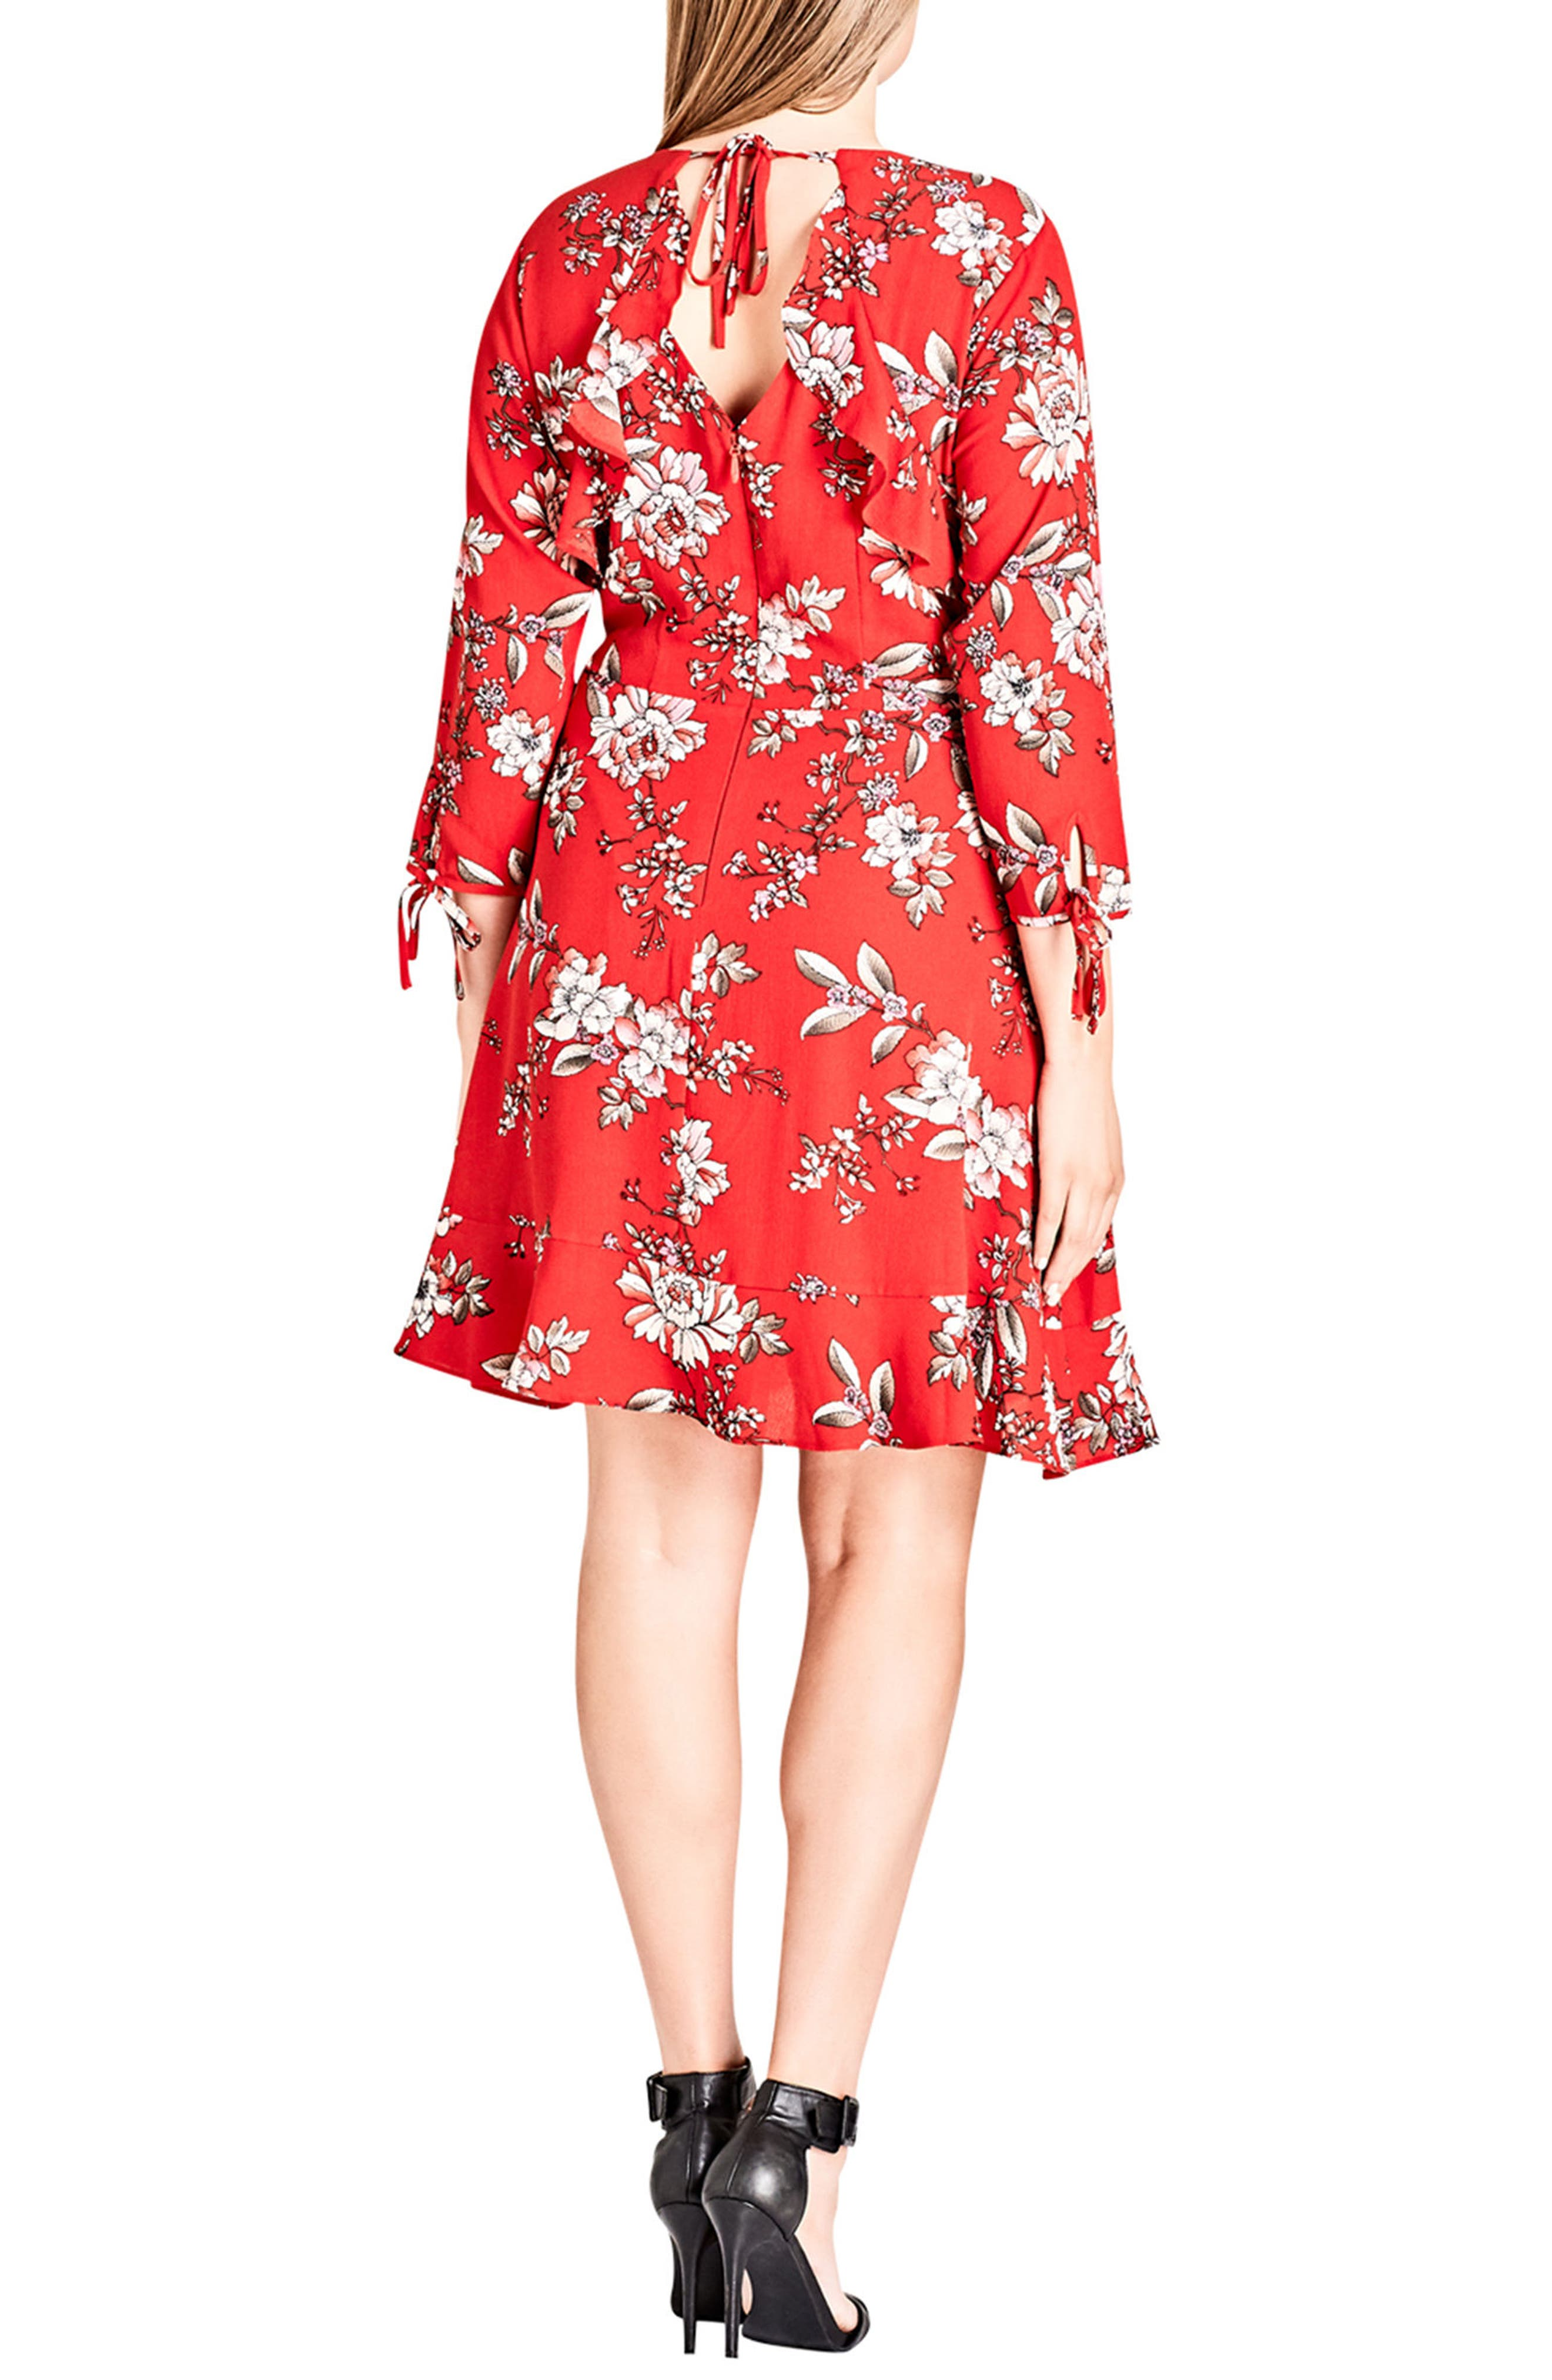 Scarlet Floral Fit & Flare Dress,                             Alternate thumbnail 2, color,                             WILD FLORAL